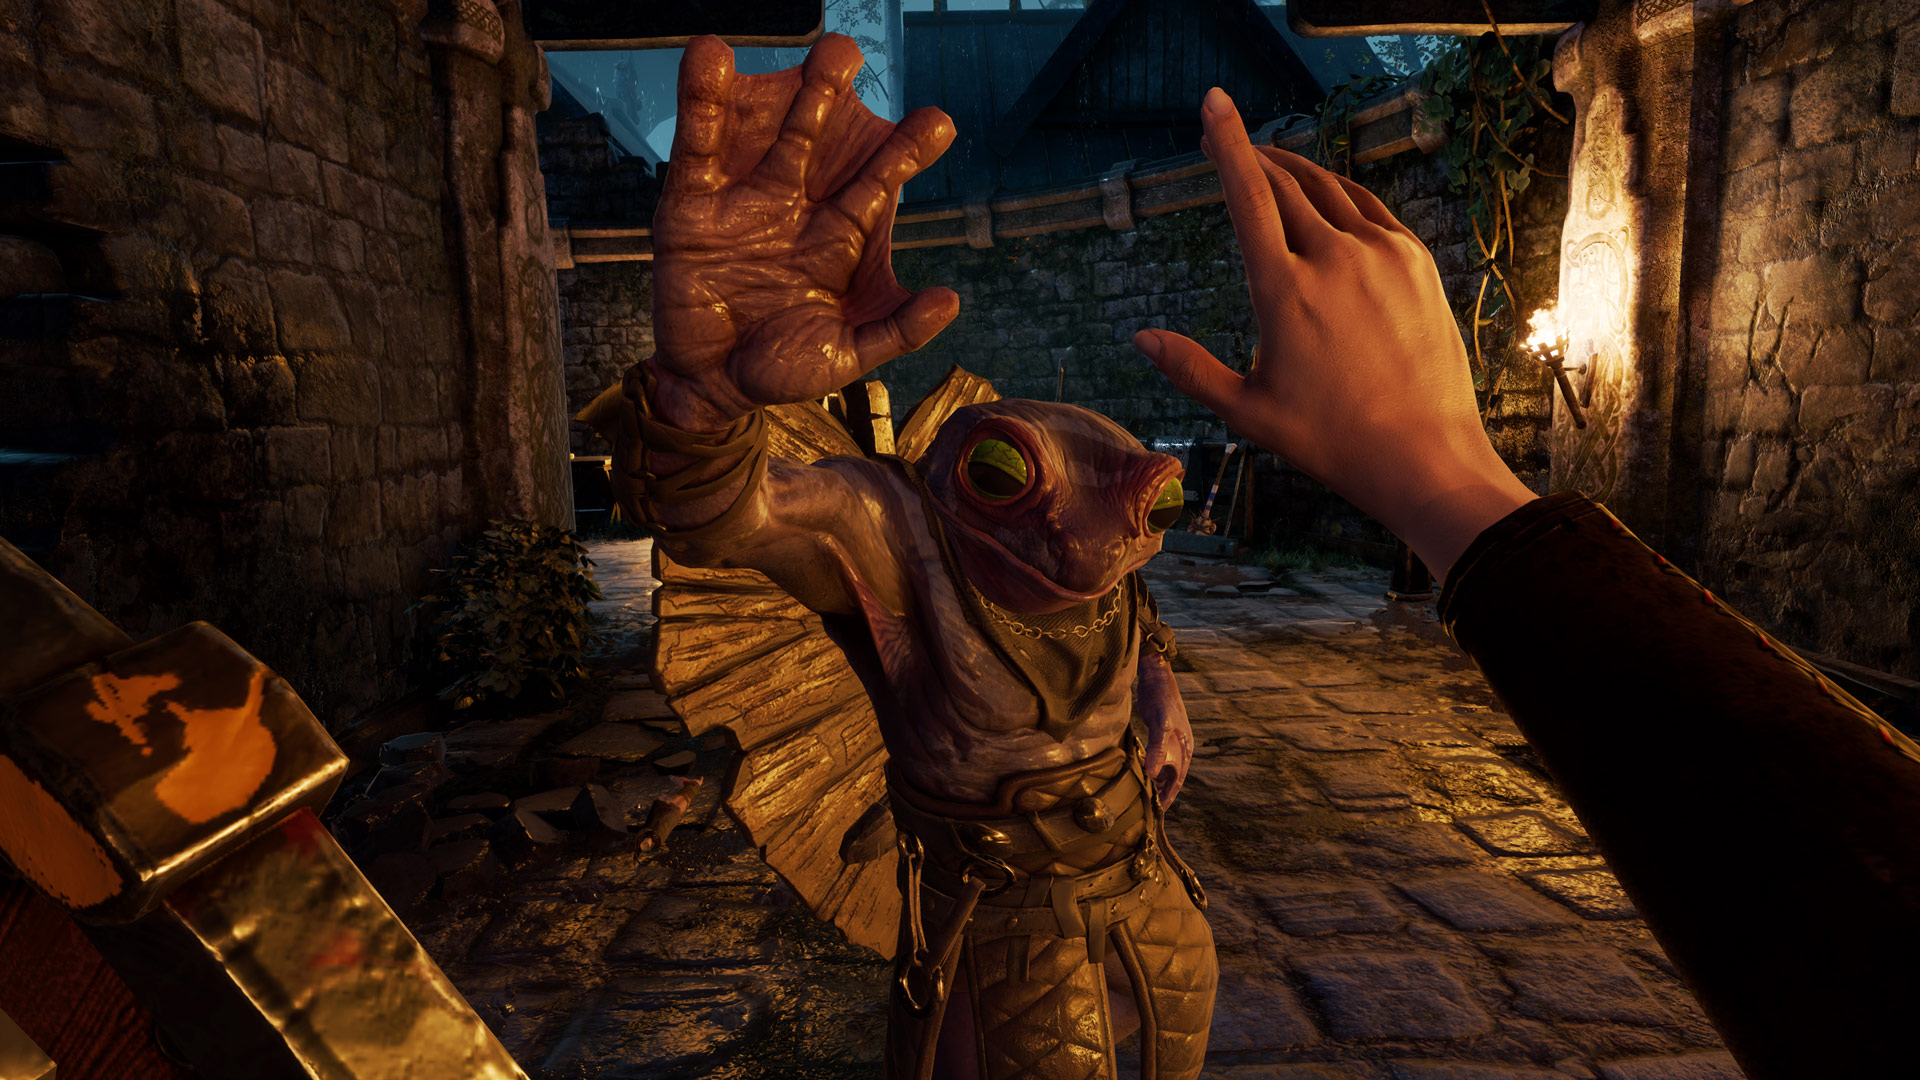 New 'Asgard's Wrath' Gameplay Video Reveals Dungeon Crawling in Motion 12